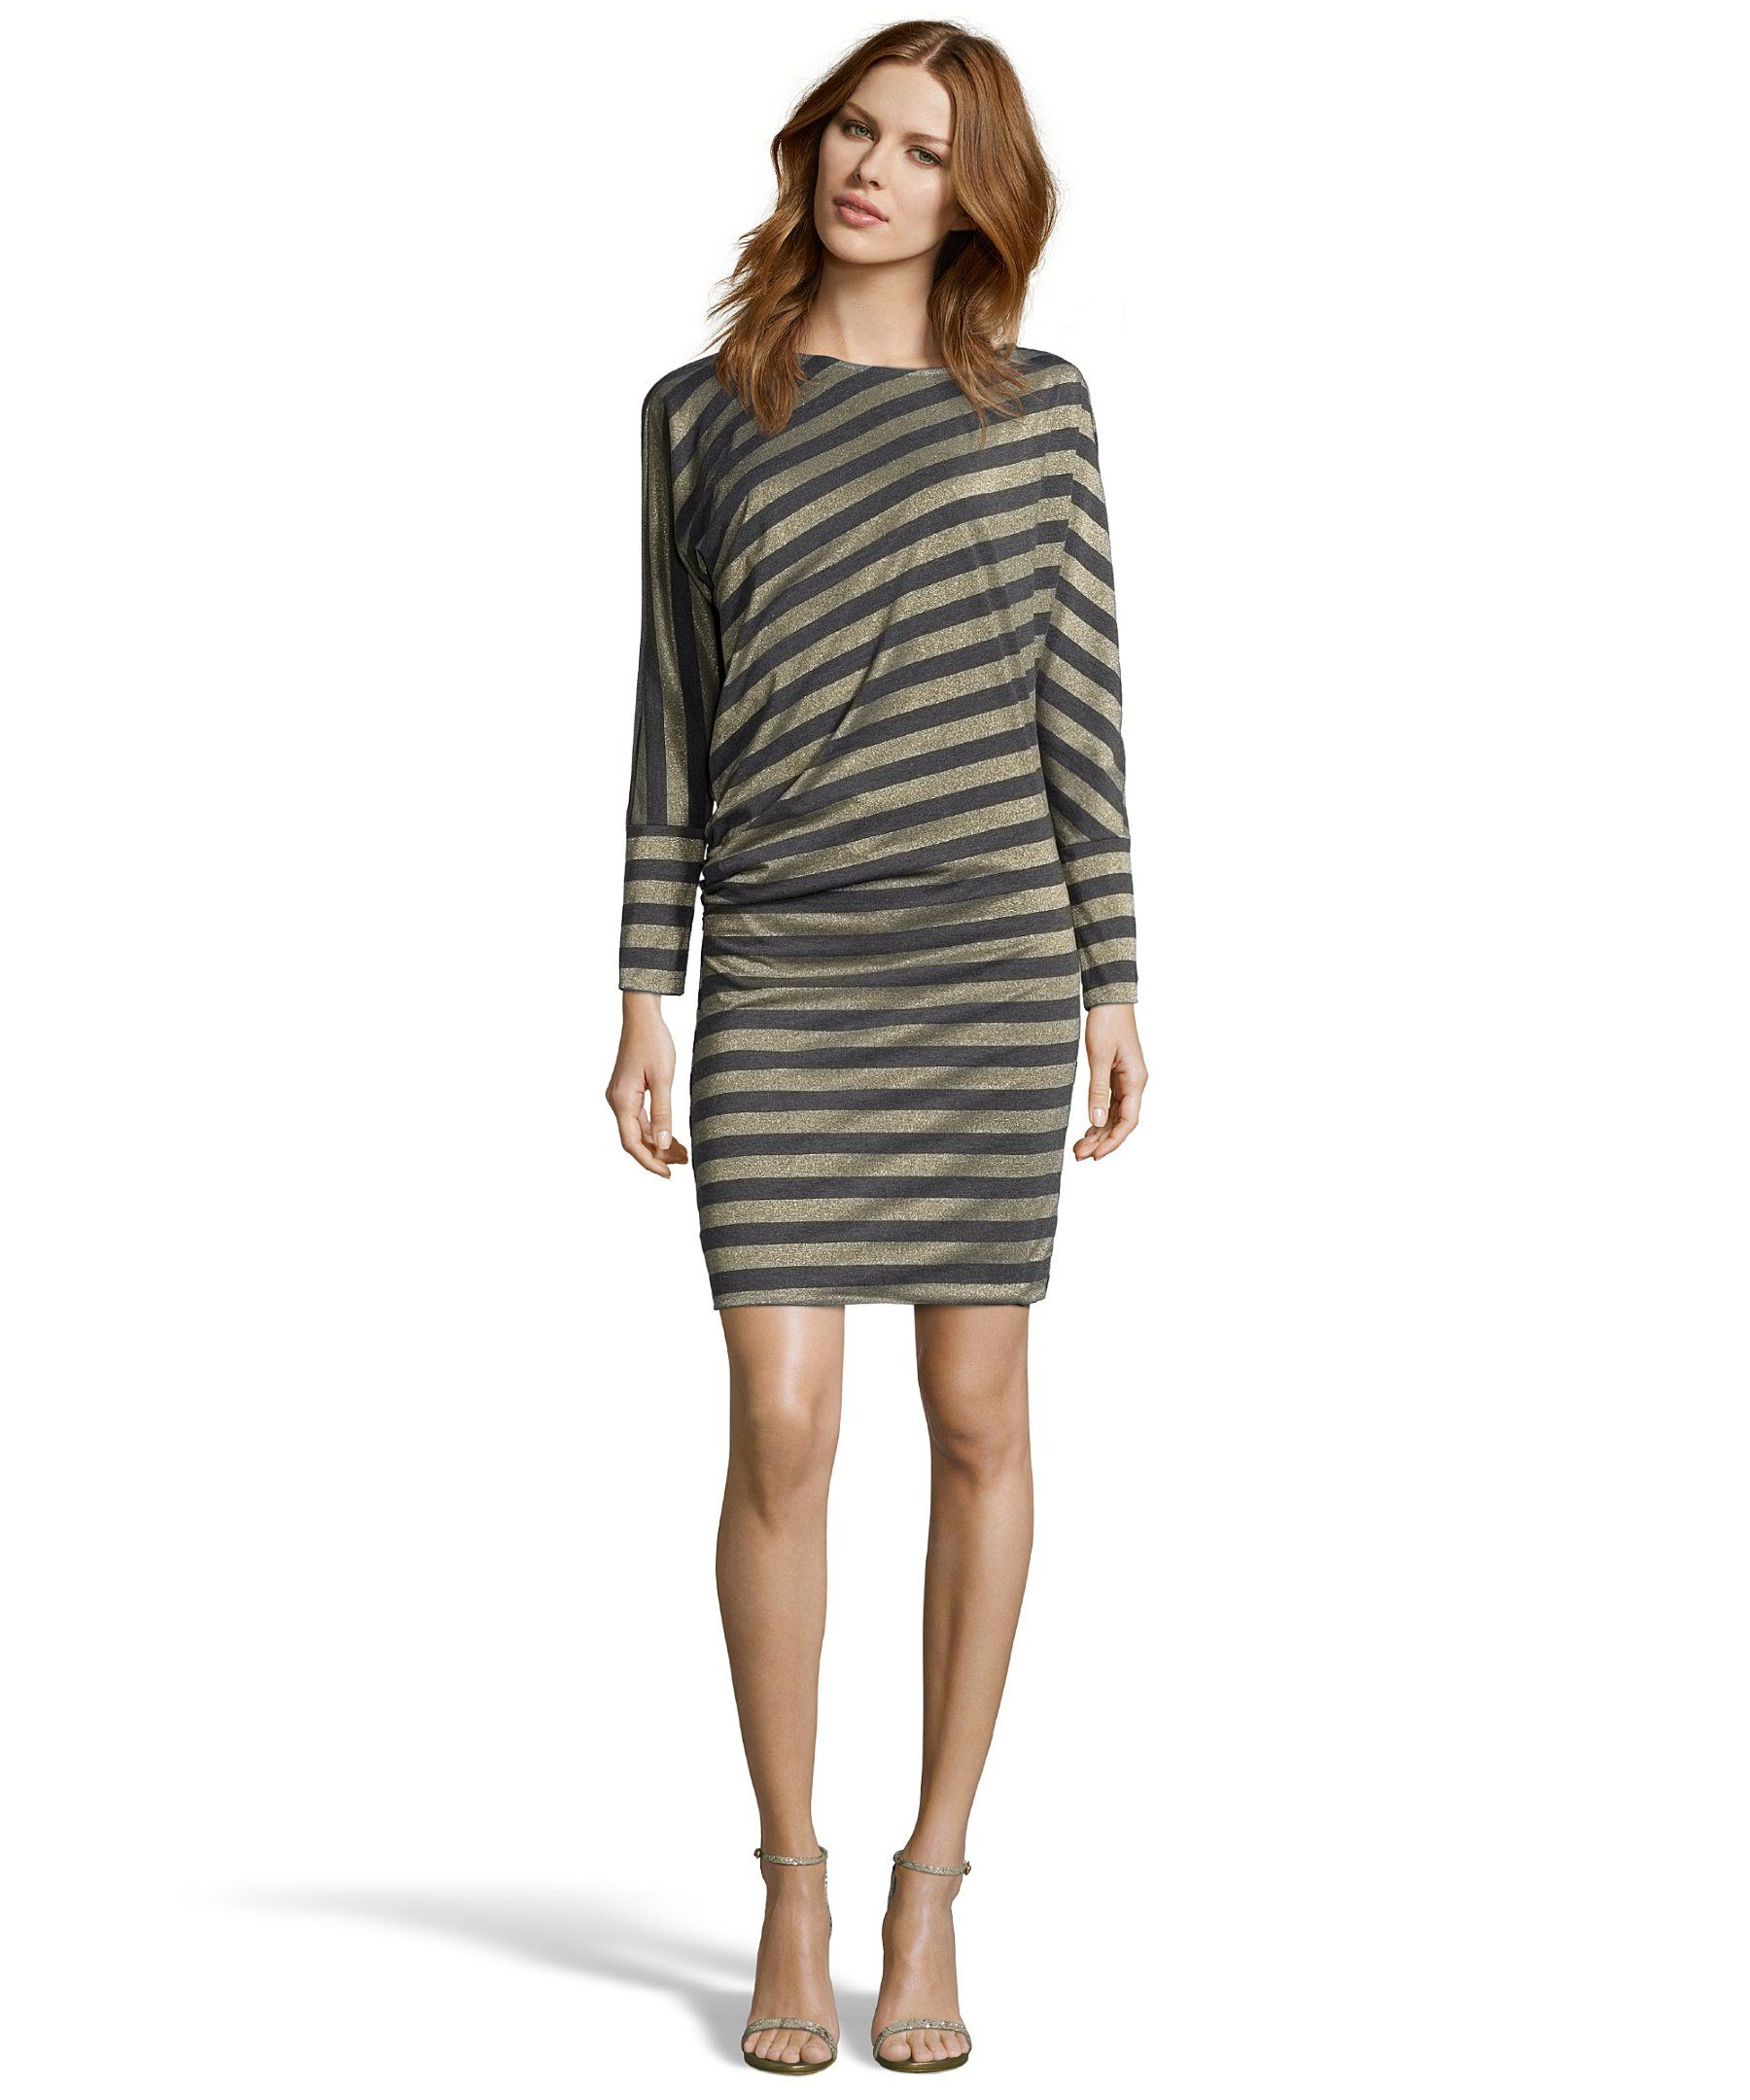 Greylin charcoal and metallic gold striped stretch long sleeve dress